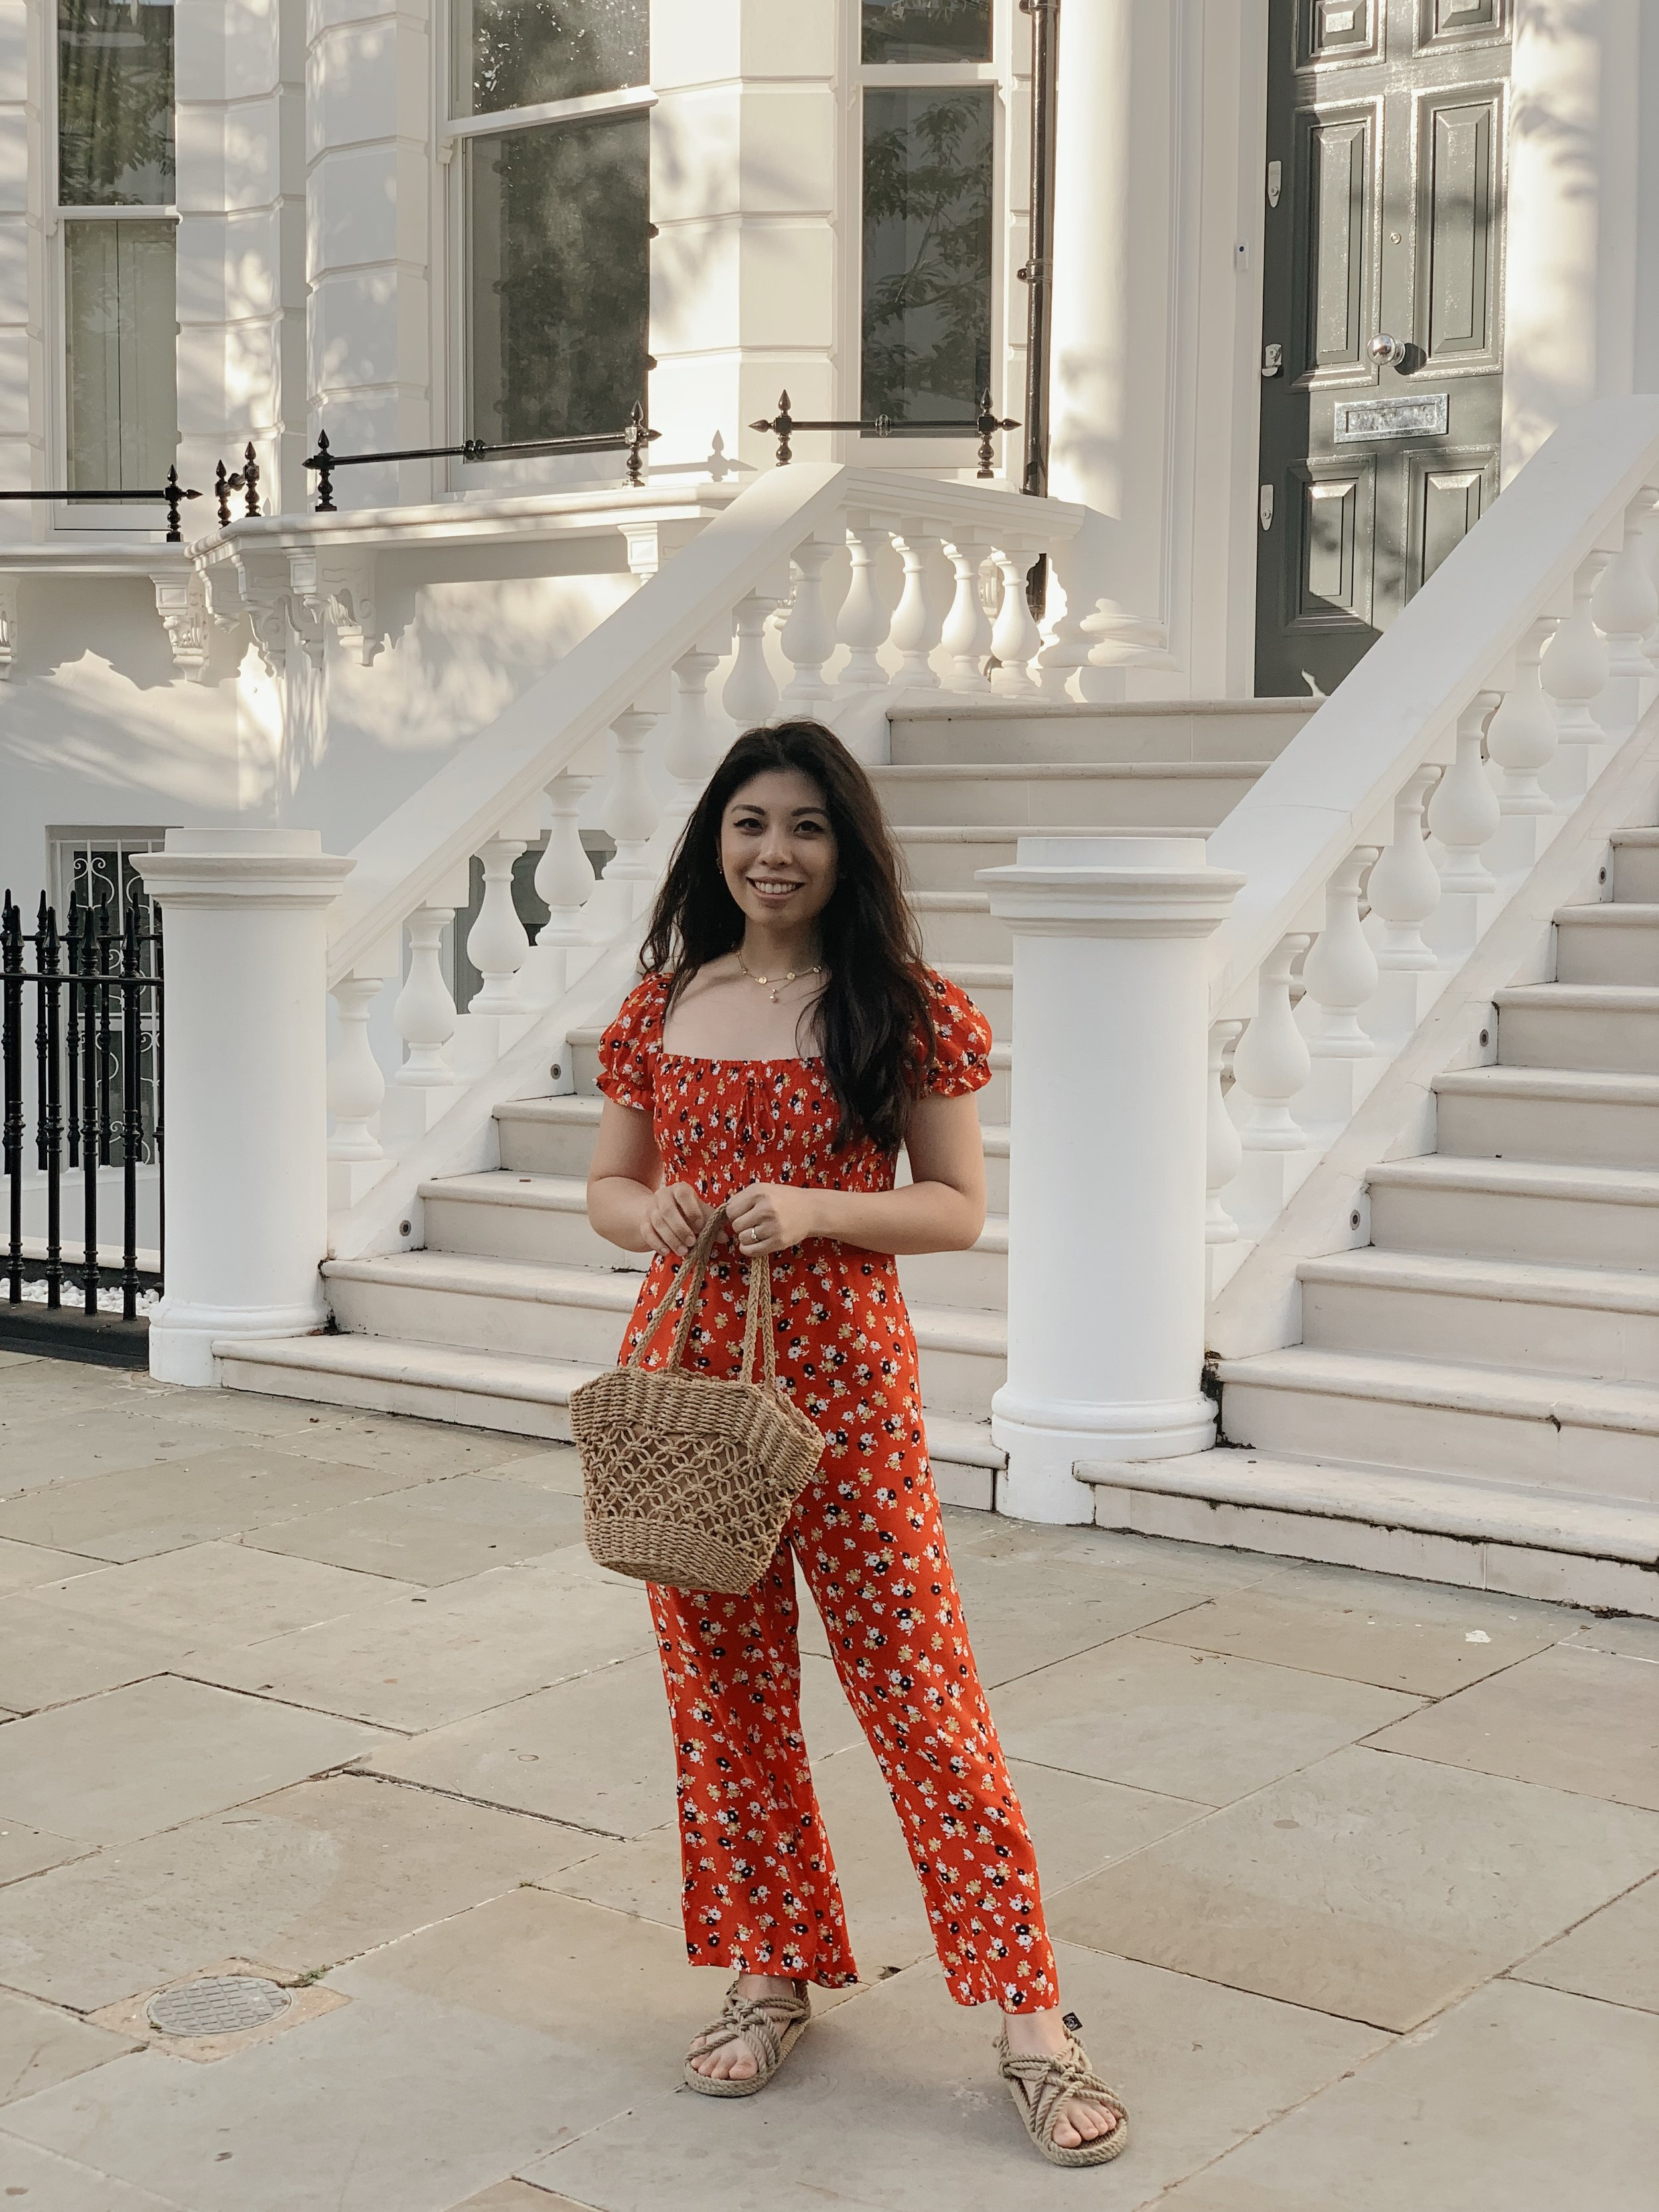 I'm wearing  this red floral jumpsuit .